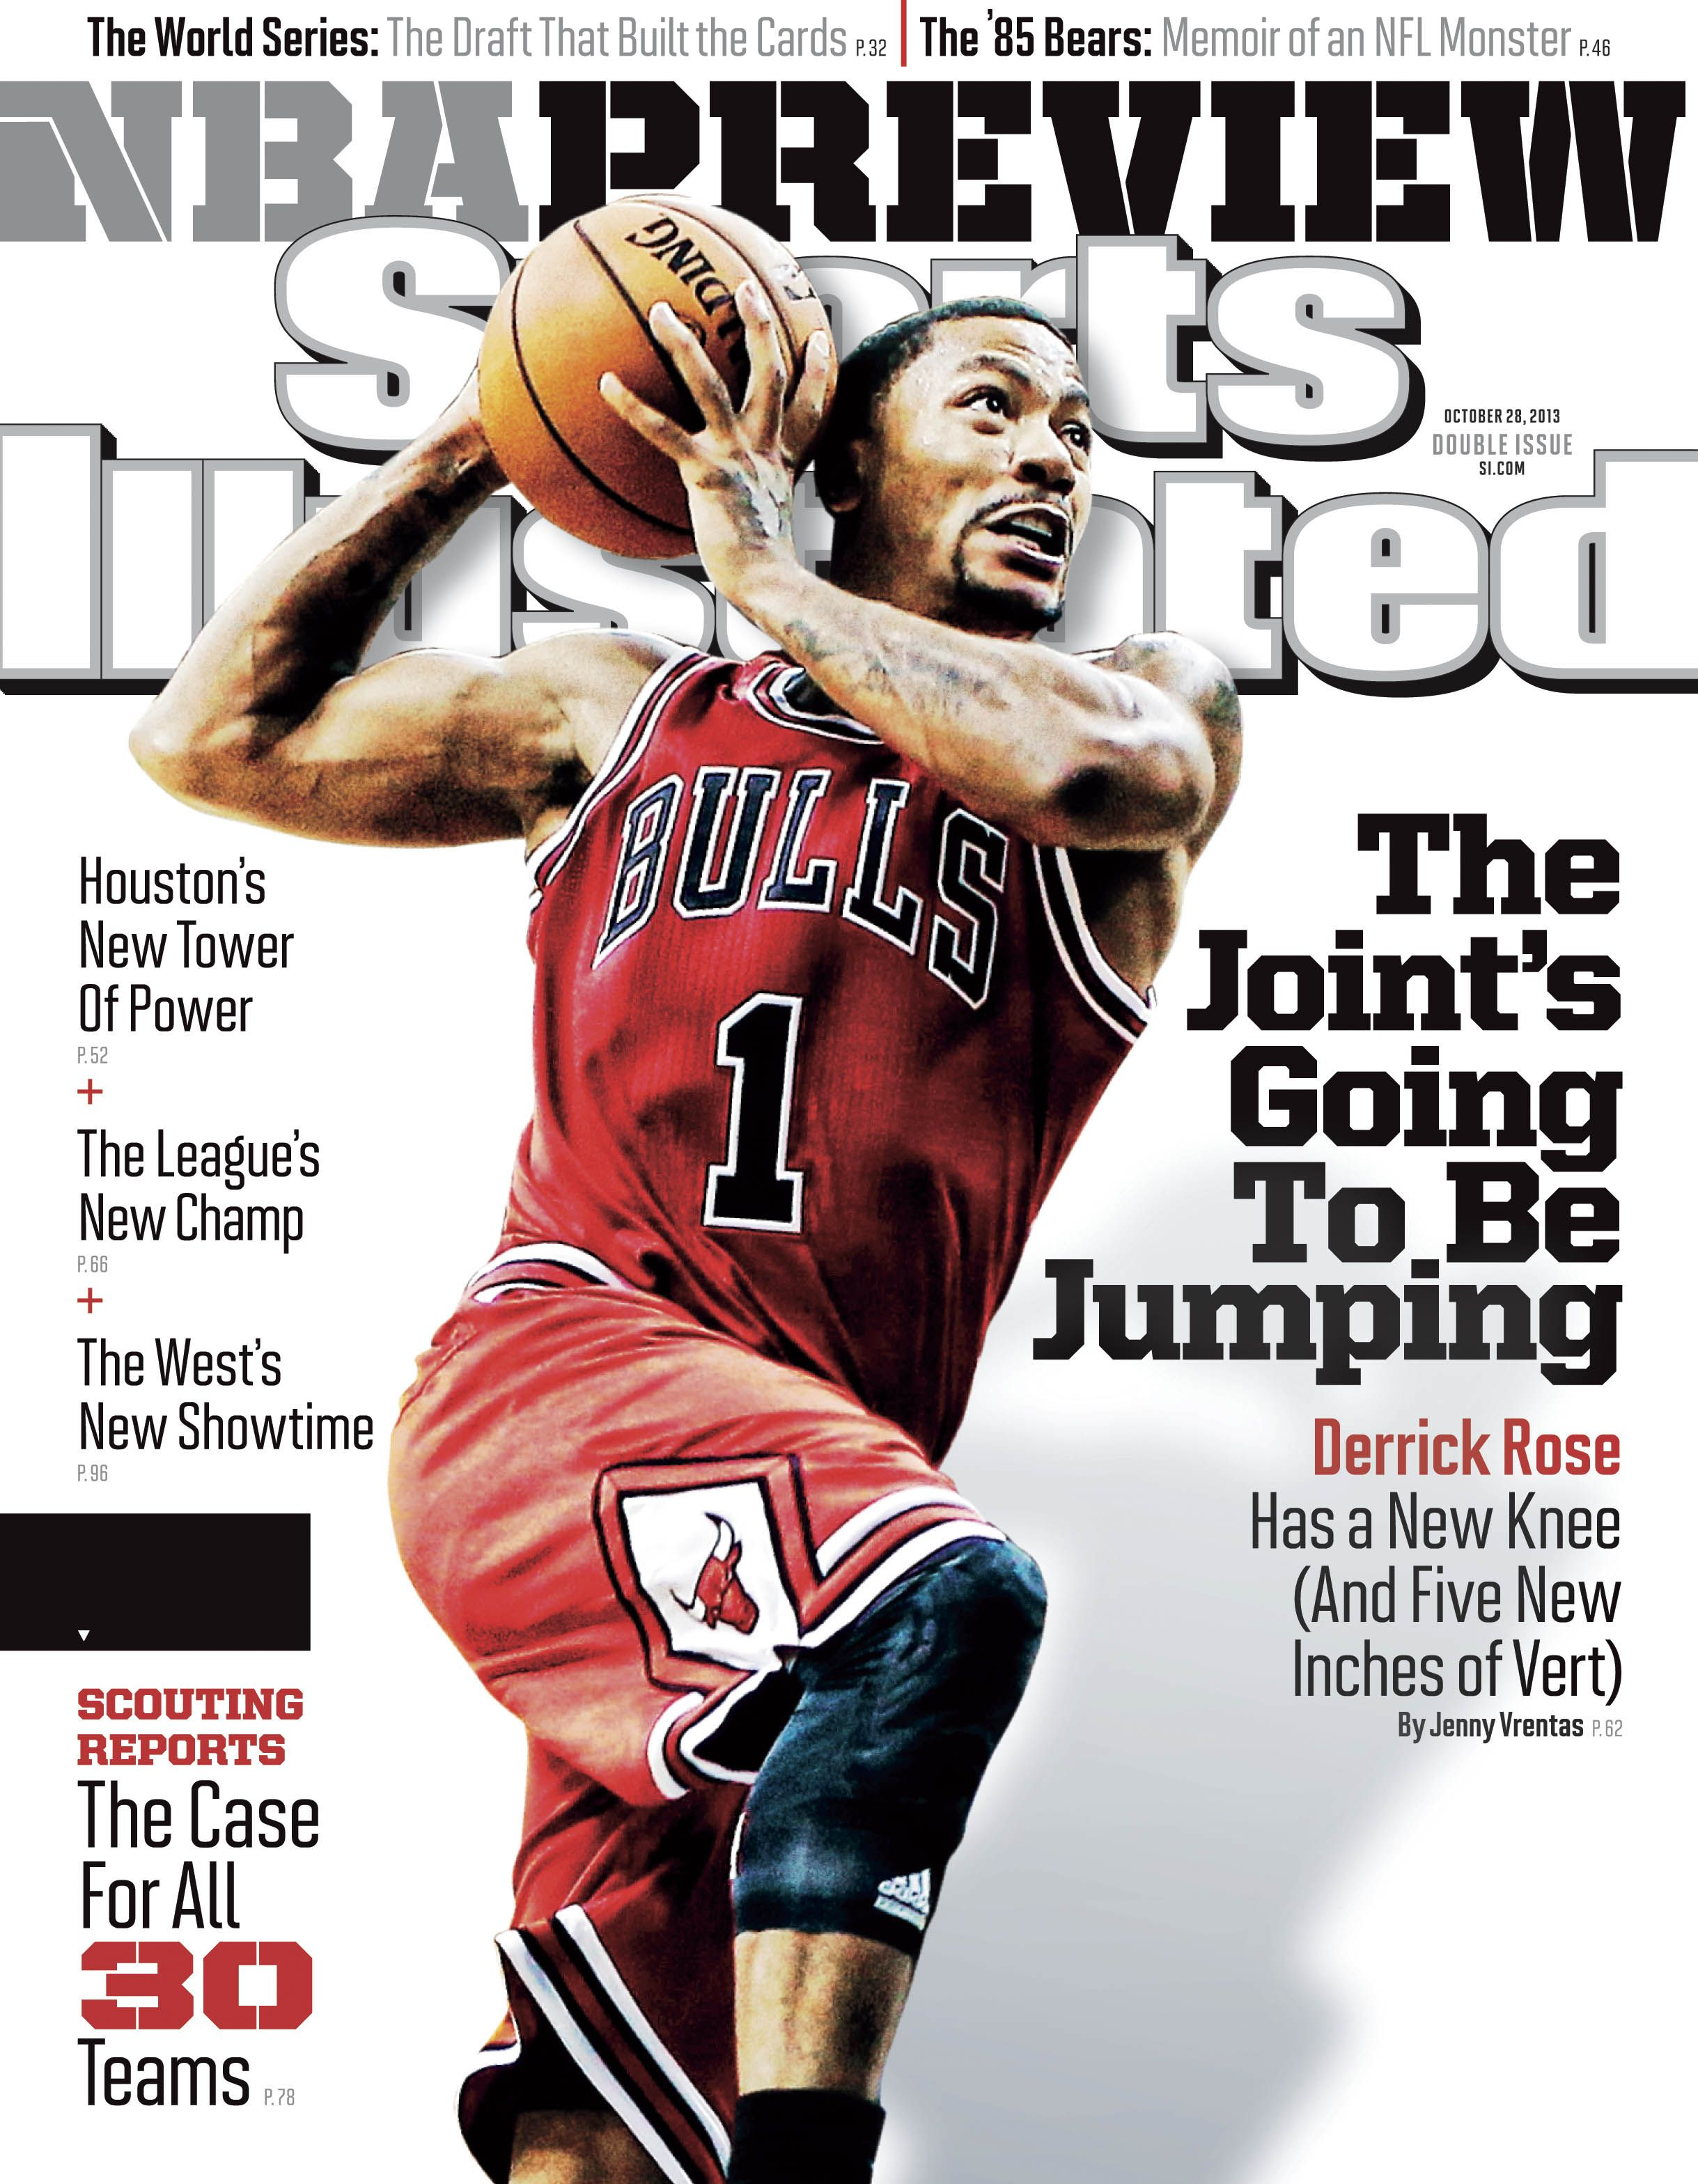 ce02a00855e This Week s NBA Preview Regional Cover (3 of 4) Derrick Rose has a new